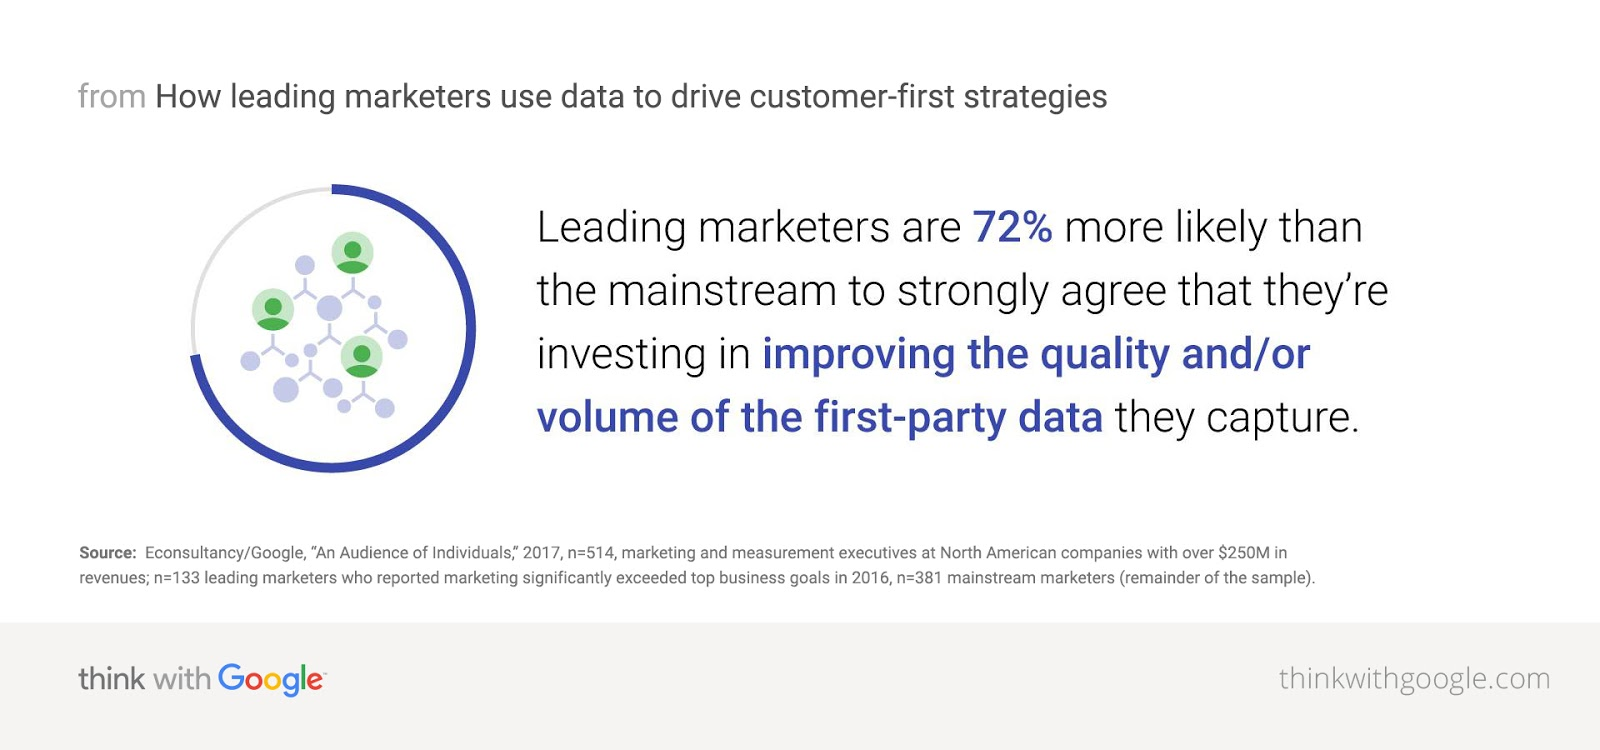 The key to customer retention is in the quality and/ or volume of the first-part data marketers capture according top a study don by Econsultancy